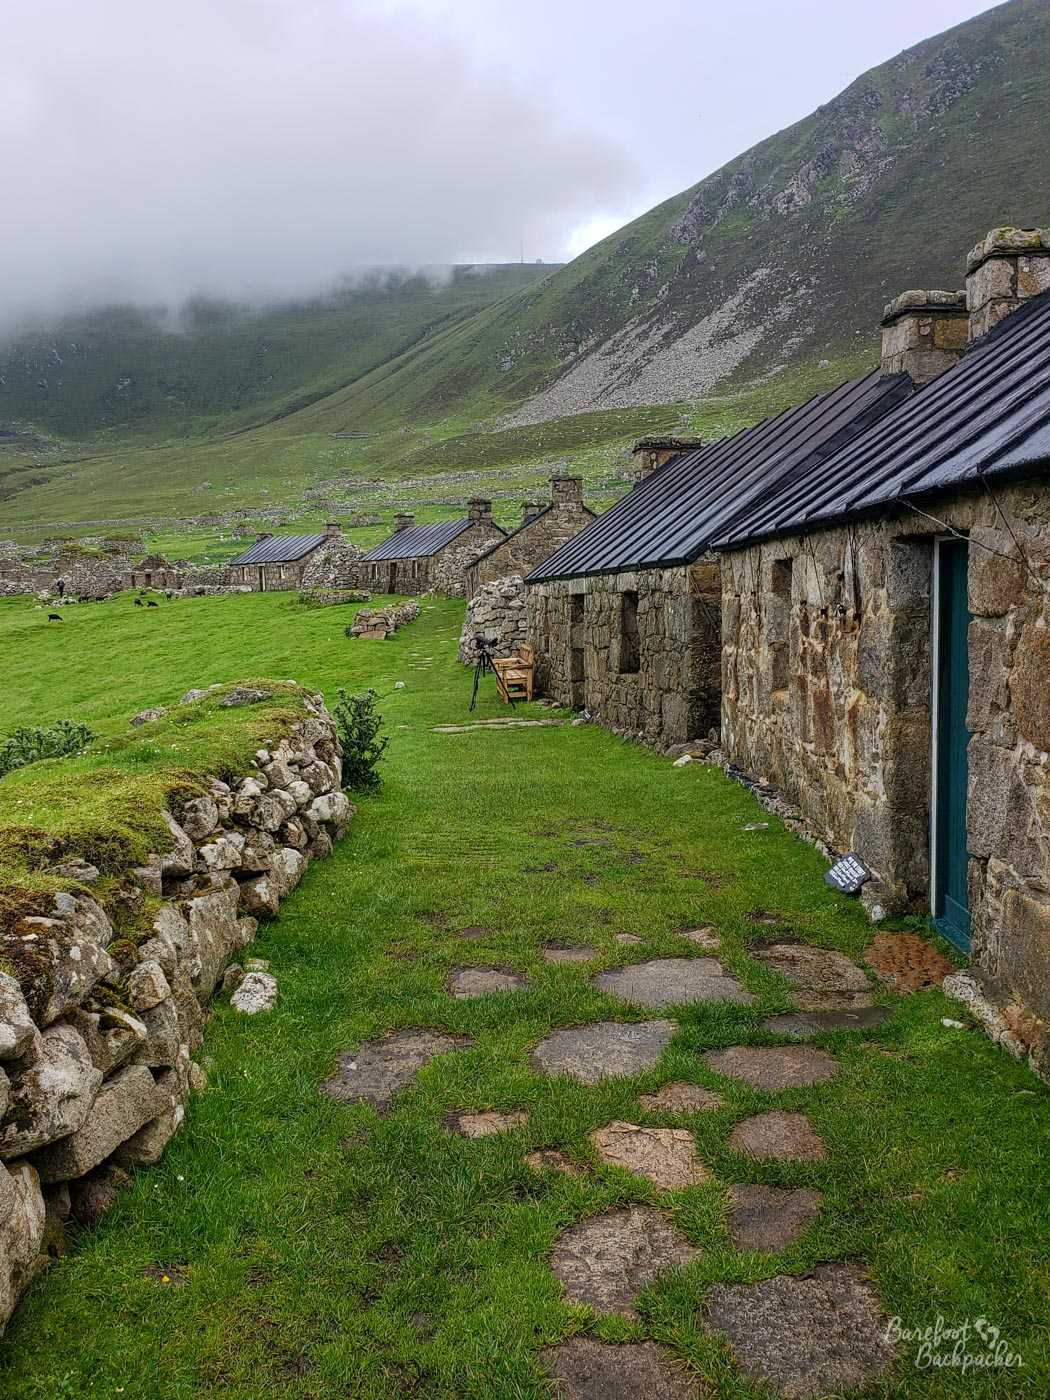 A look down the main road at the settlement on Hirta, with fields on the left and the ruins of stone cottages on the right.